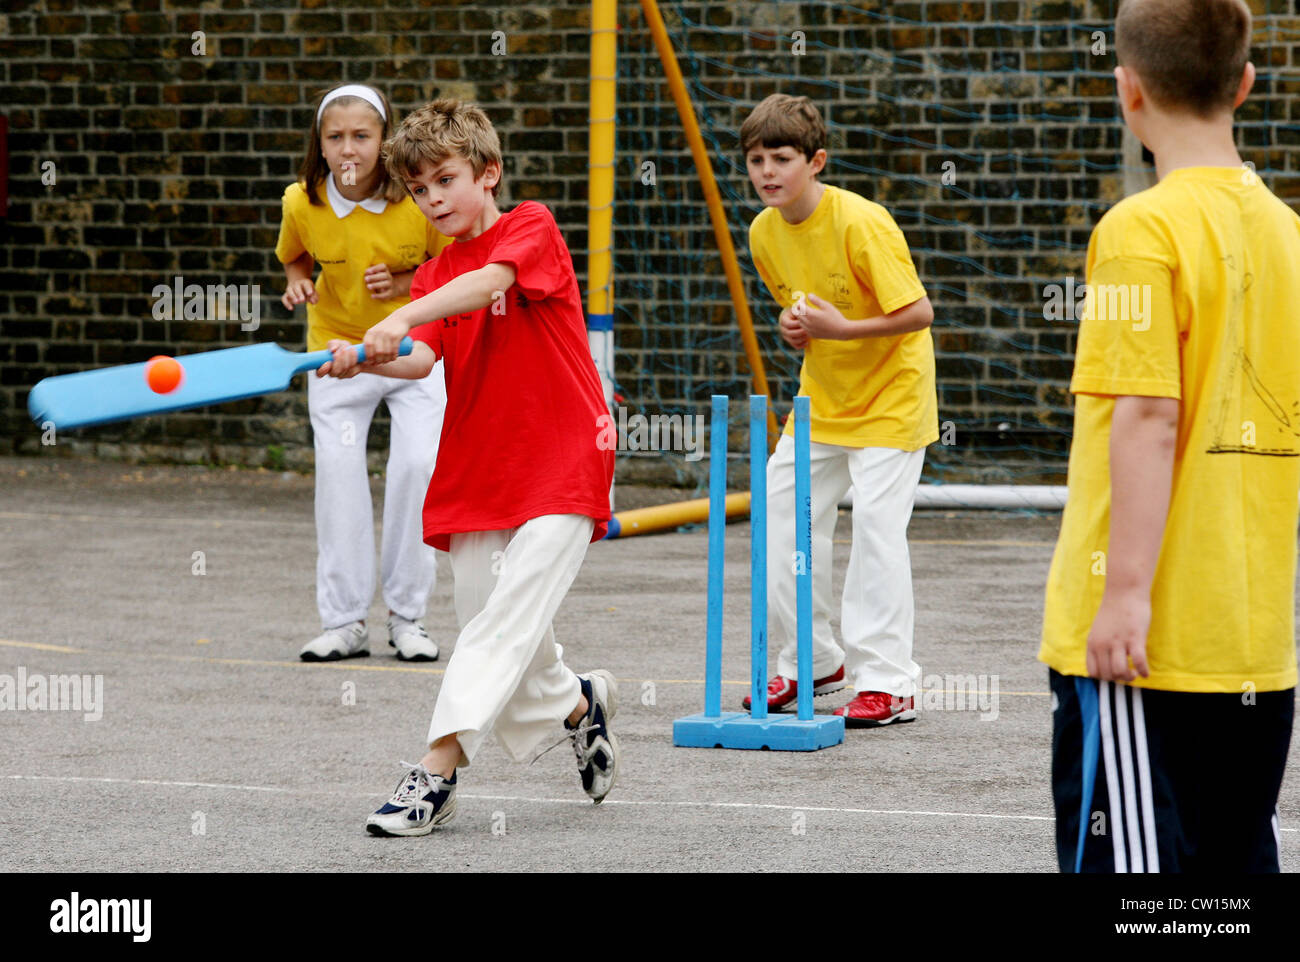 Year 6 Pupils at Brackenbury Primary School participate in a sports lesson in the playground, West London, England, - Stock Image